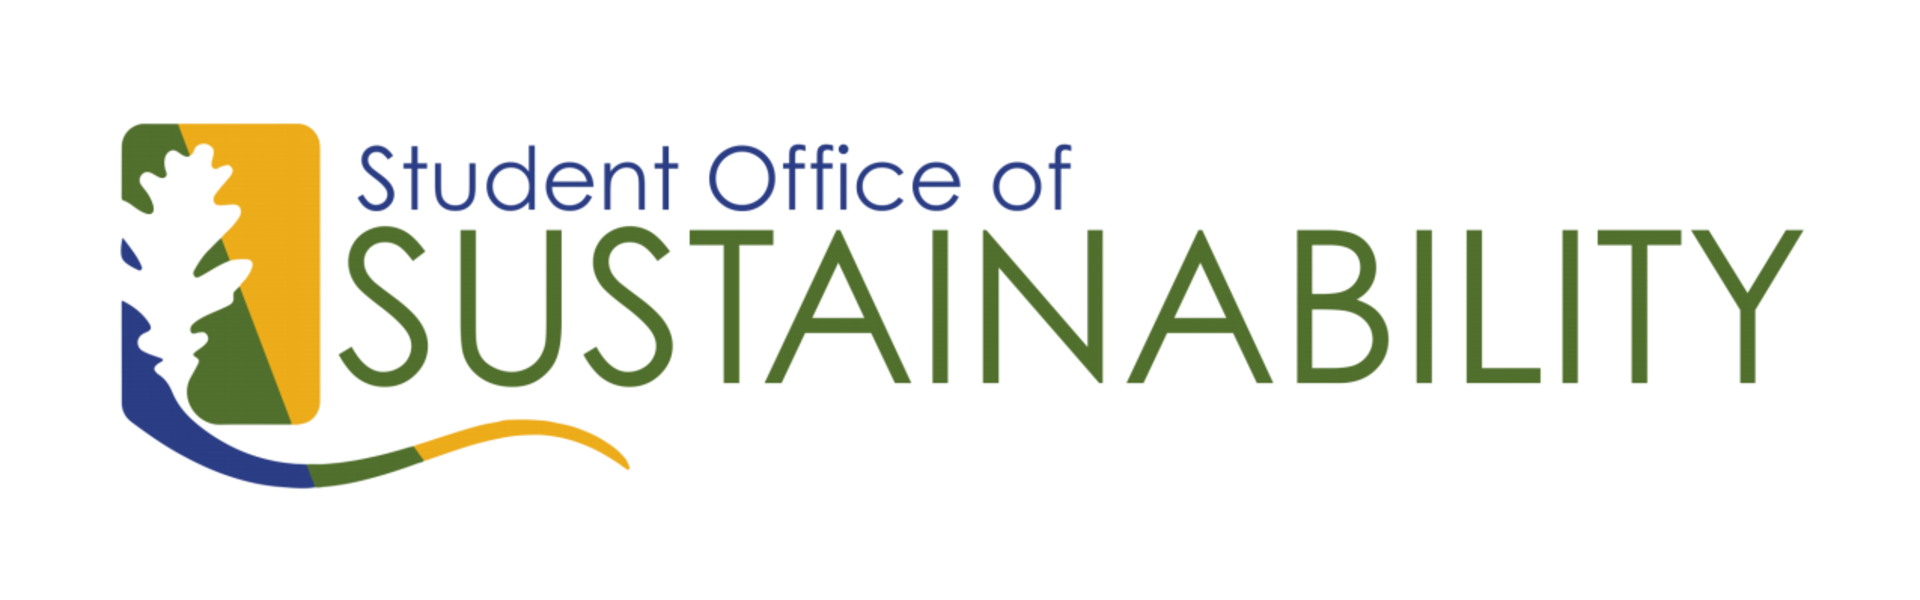 Student Office of Sustainability Logo